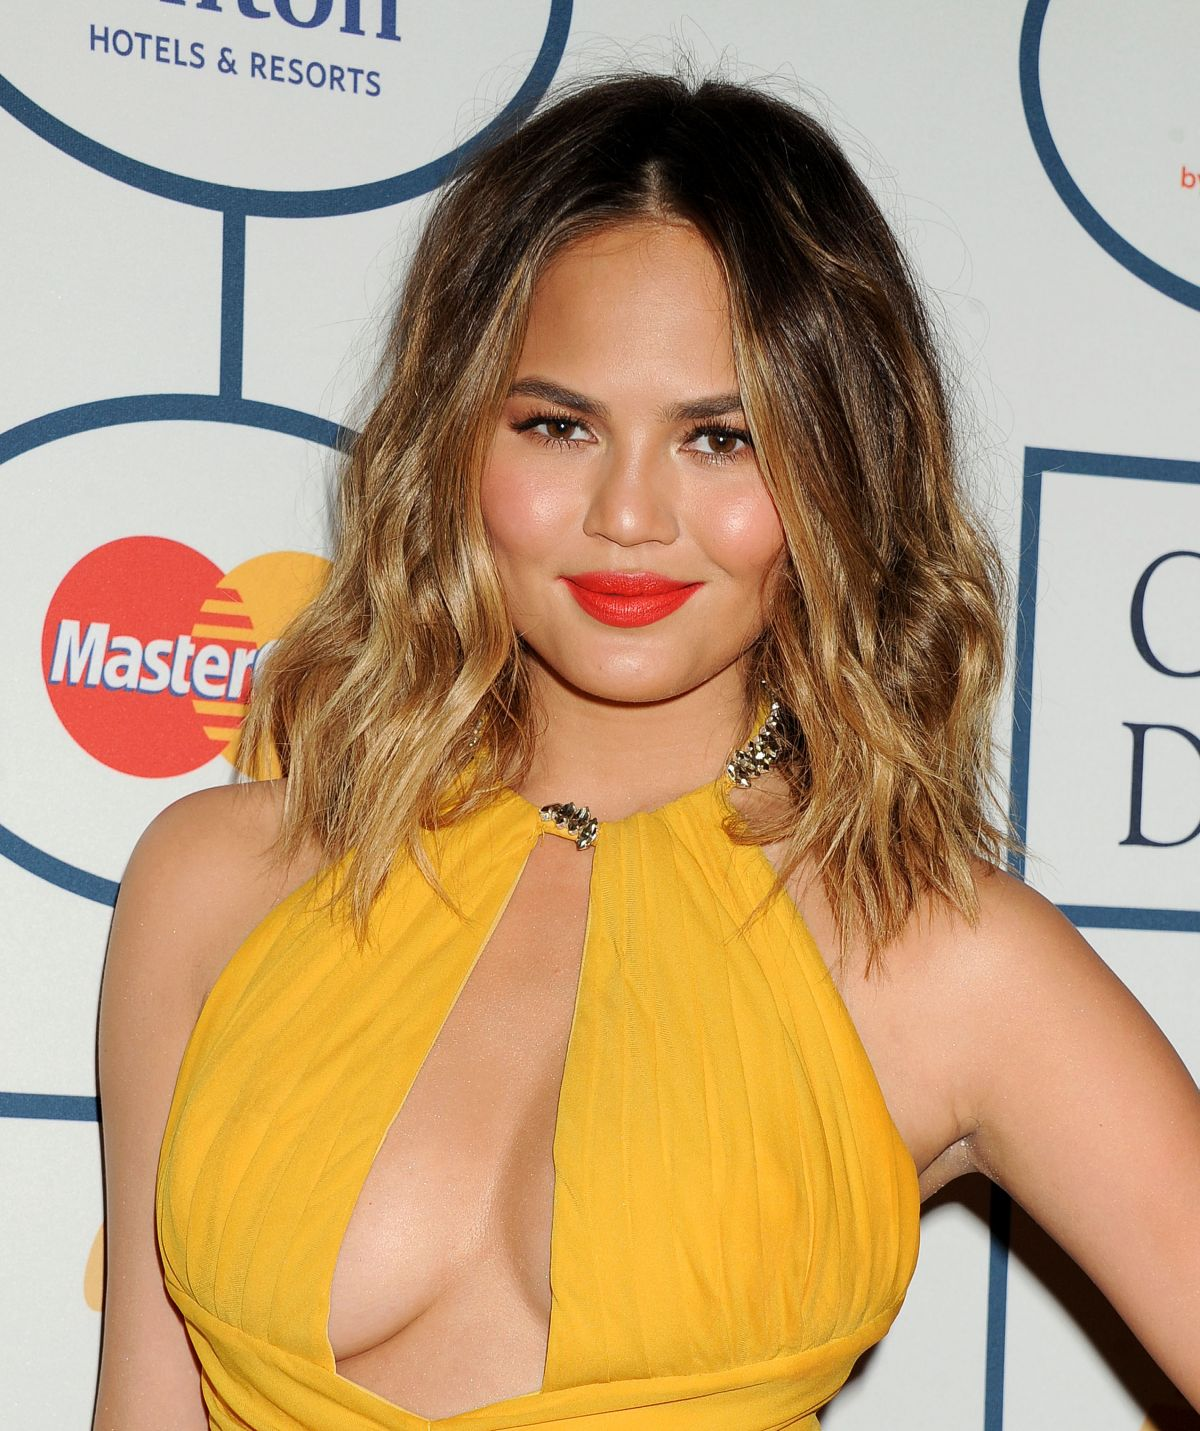 chrissy-teigen-at-2014-pre-grammy-gala-in-beverly-hills-2_1